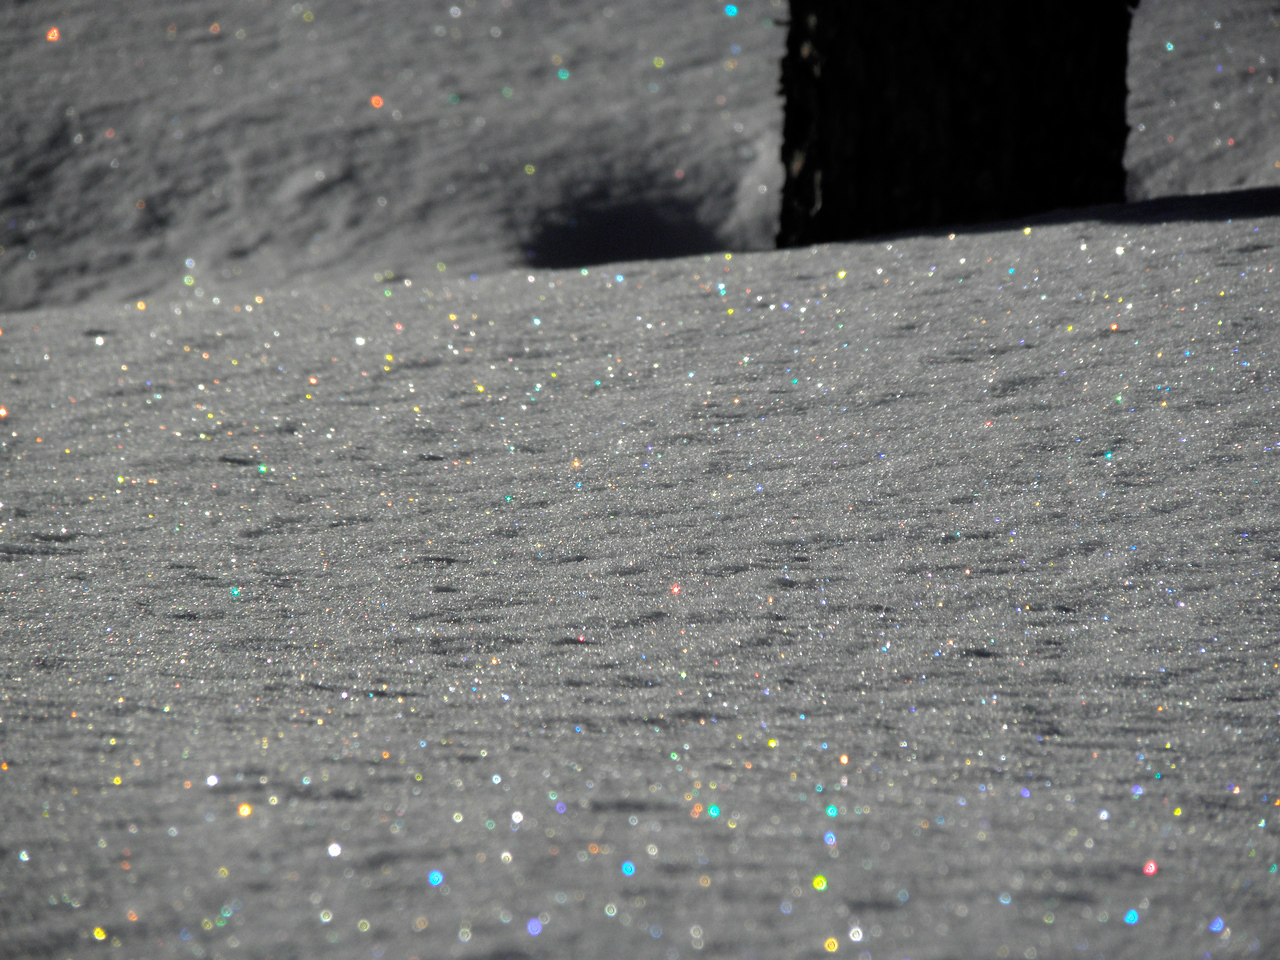 I have tried for years to get a good shot of the rainbow of reflections from individual snow flakes. This is as close as I've come.